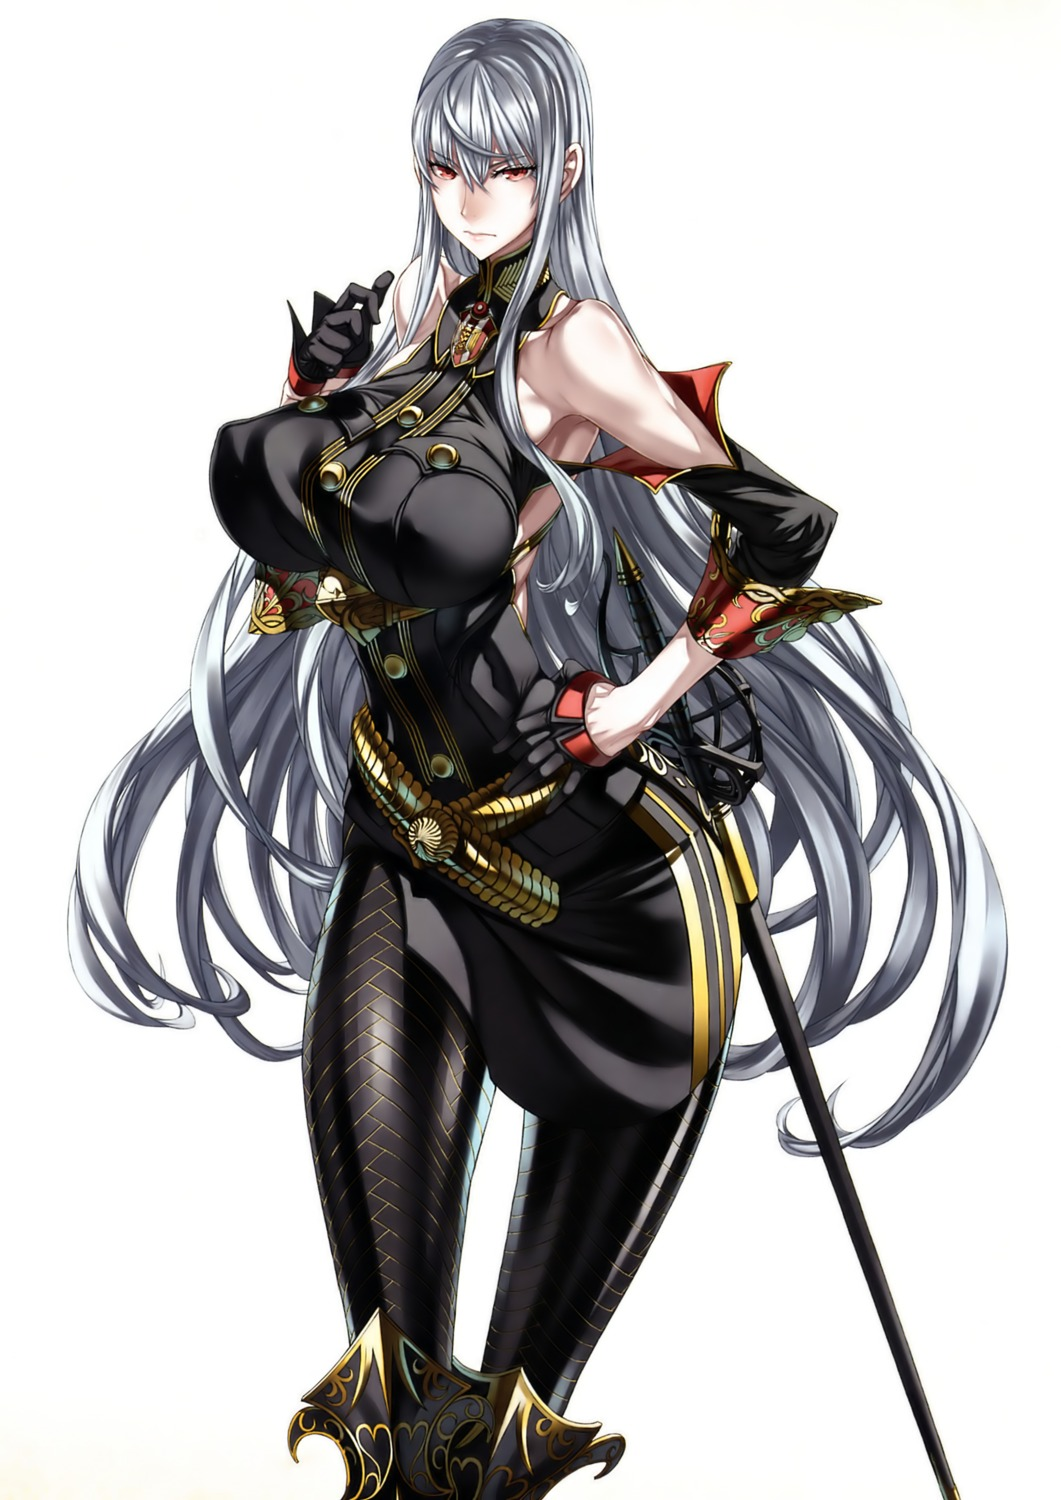 erect_nipples honjou_raita selvaria_bles sword valkyria_chronicles valkyria_chronicles_duel